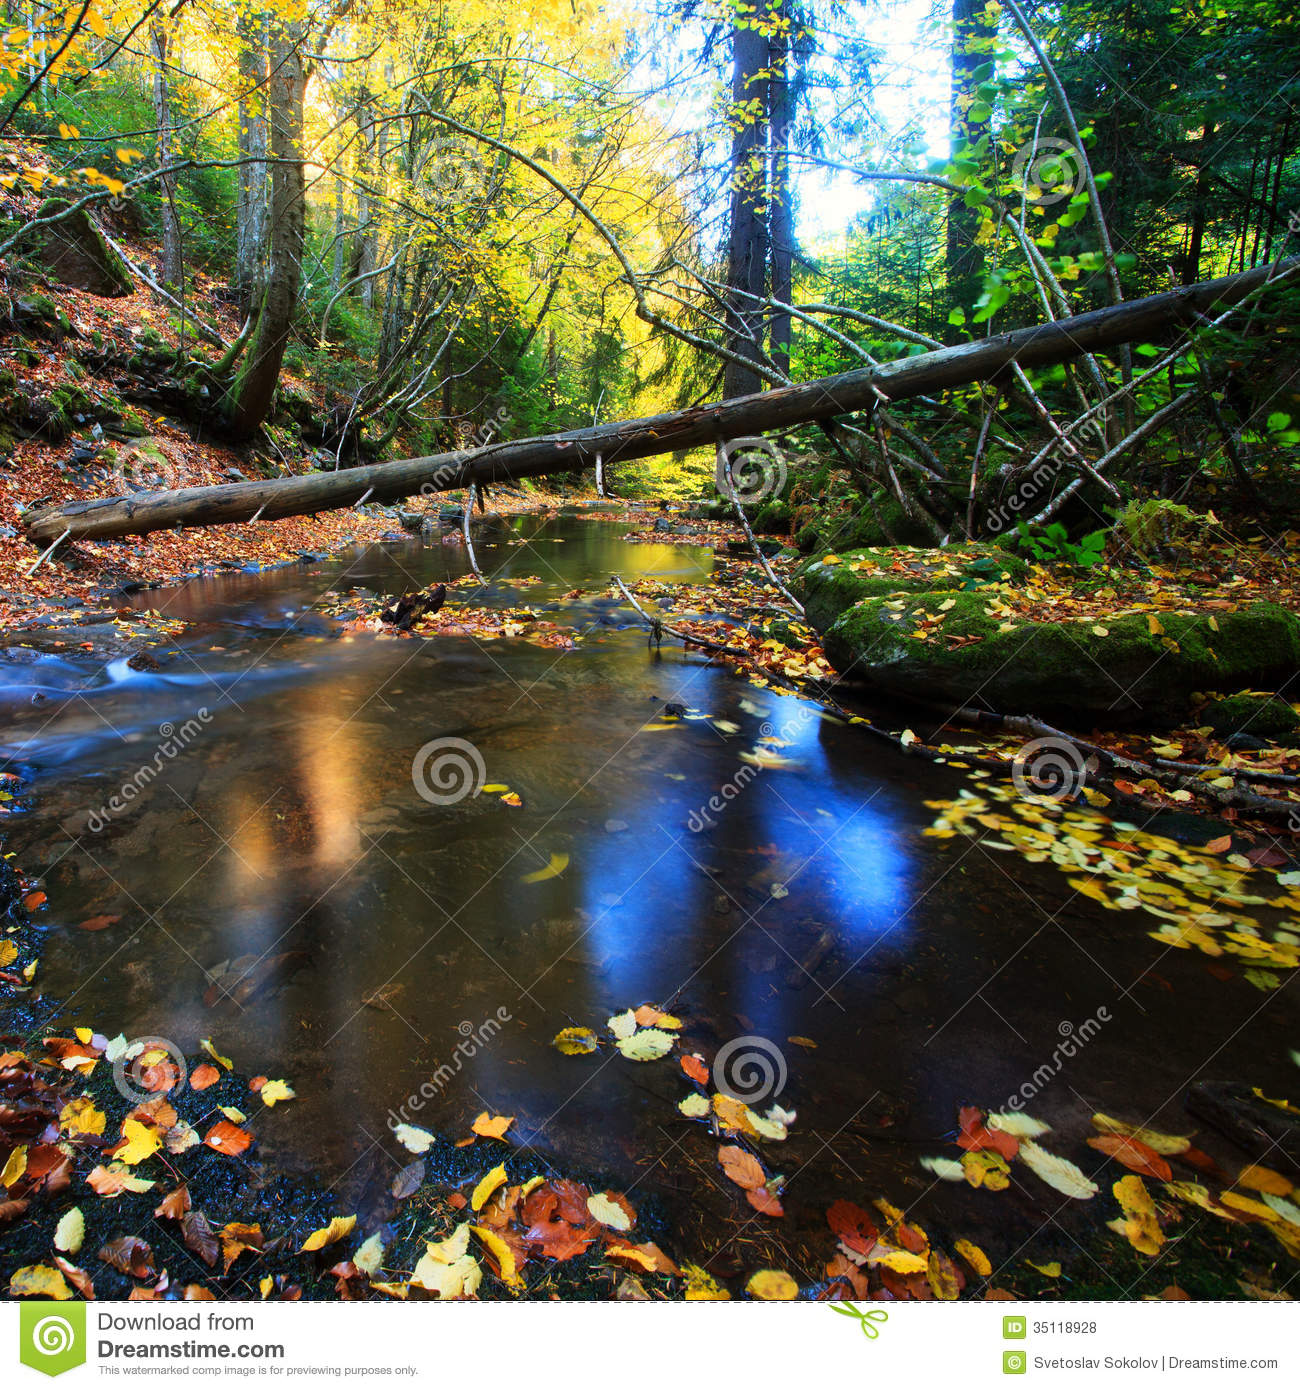 Autumn forest colorful stream details in bulgarian Rhodope mountain.